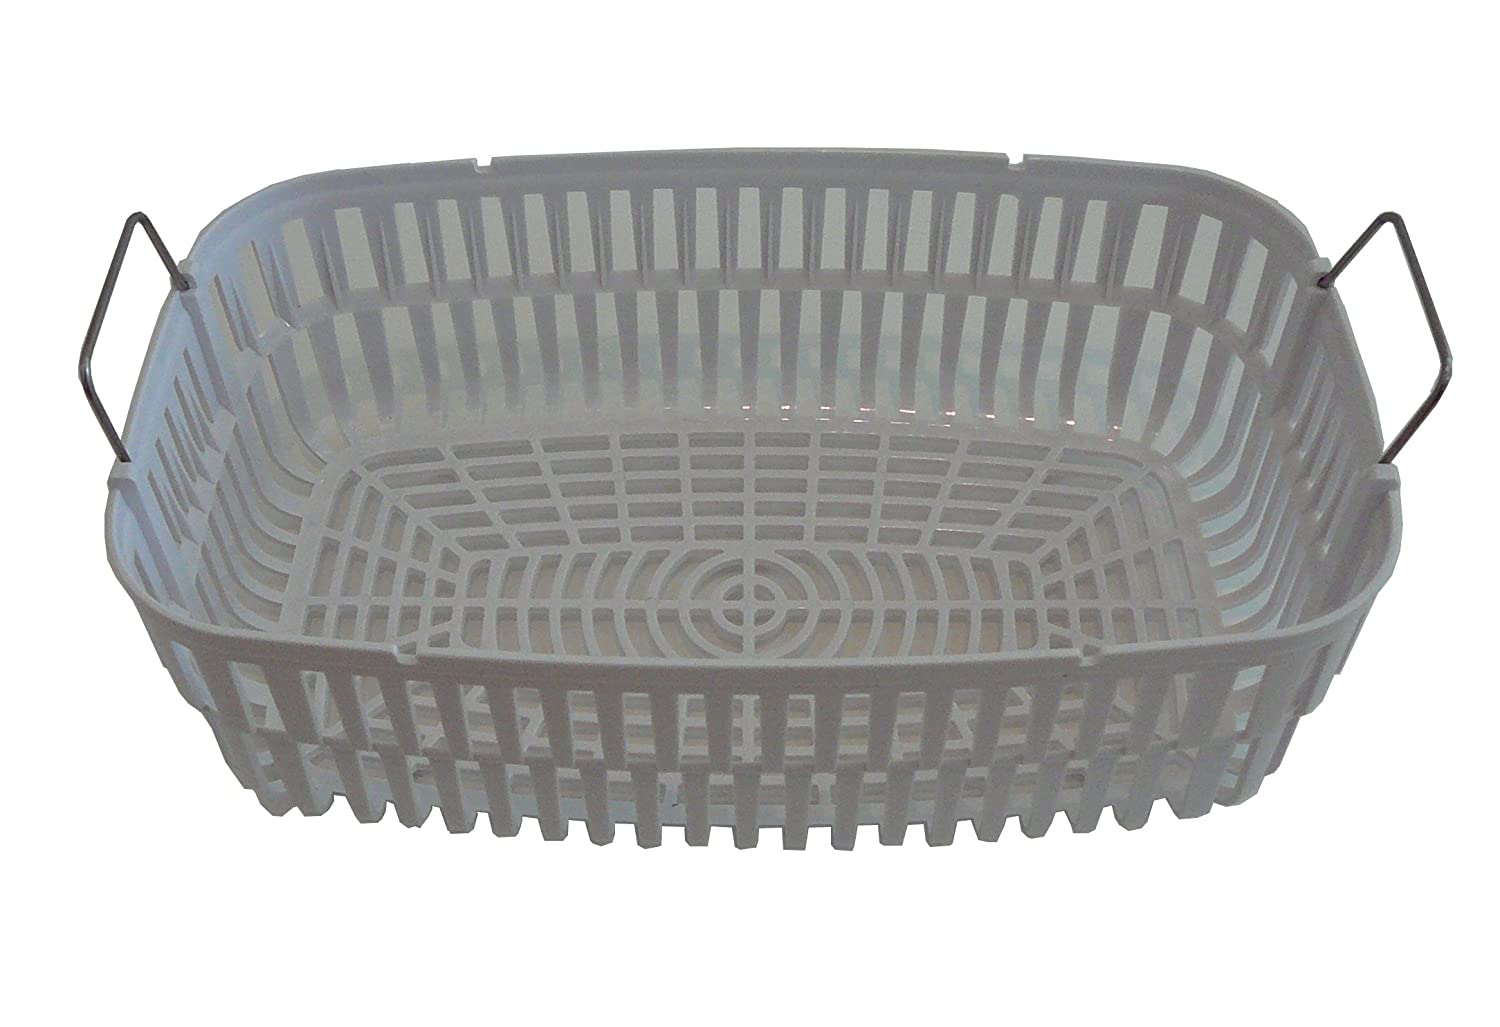 iSonic PB4820A Plastic Basket for Ultrasonic Cleaner P4820